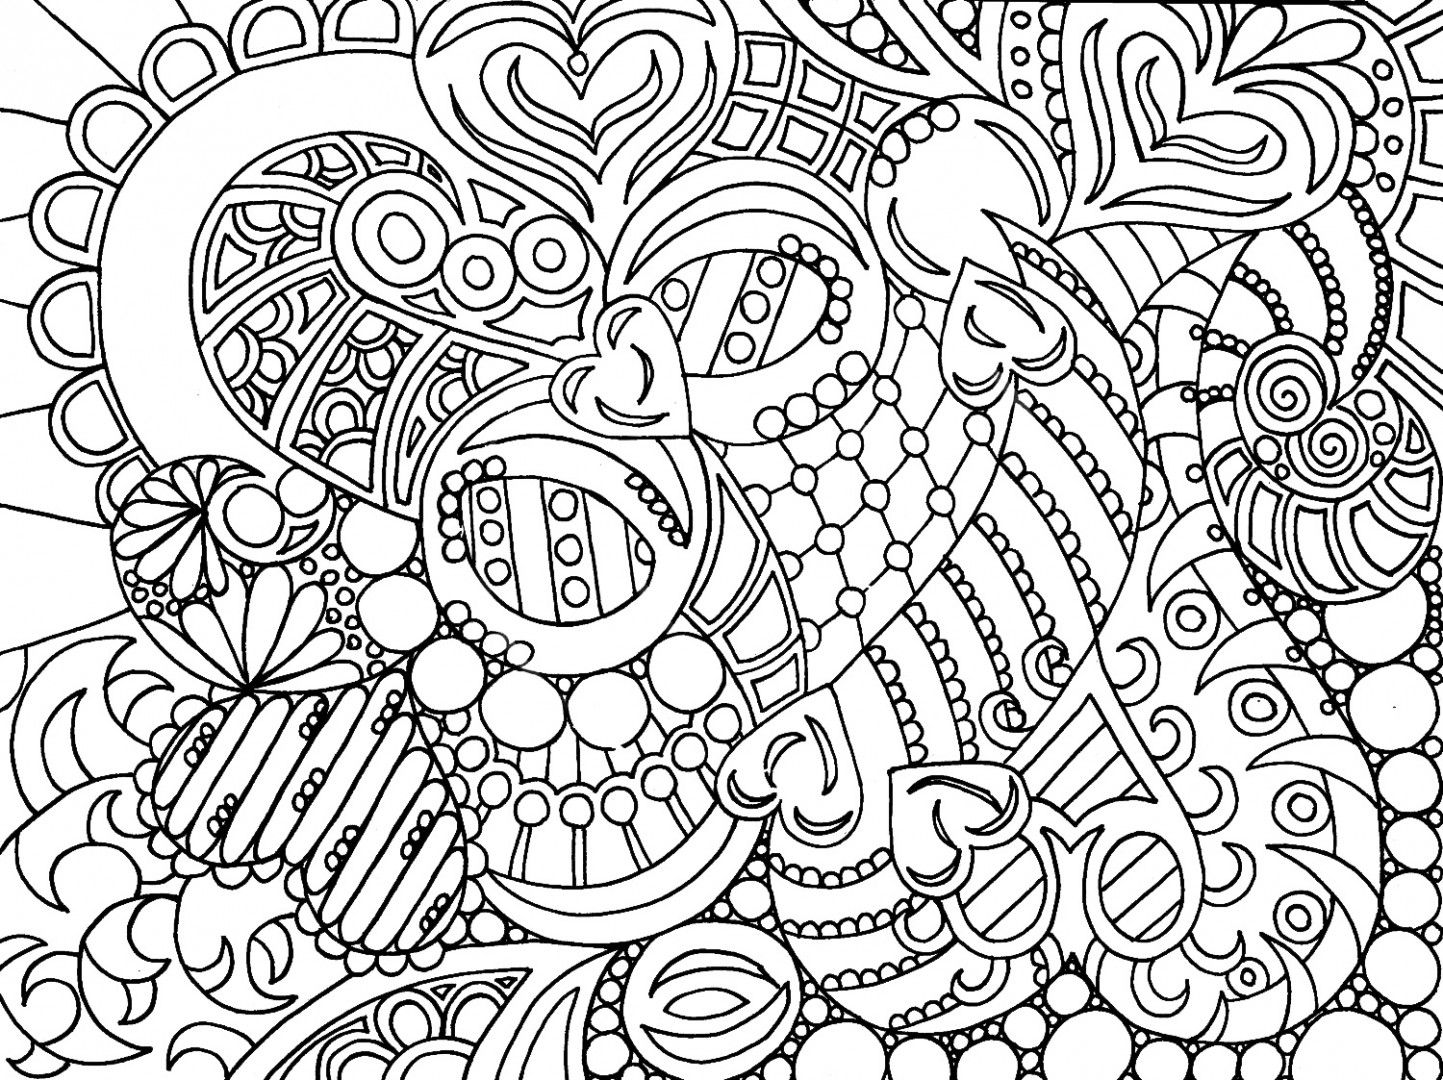 Stress free coloring images - Http Colorings Co Stress Free Coloring Pages